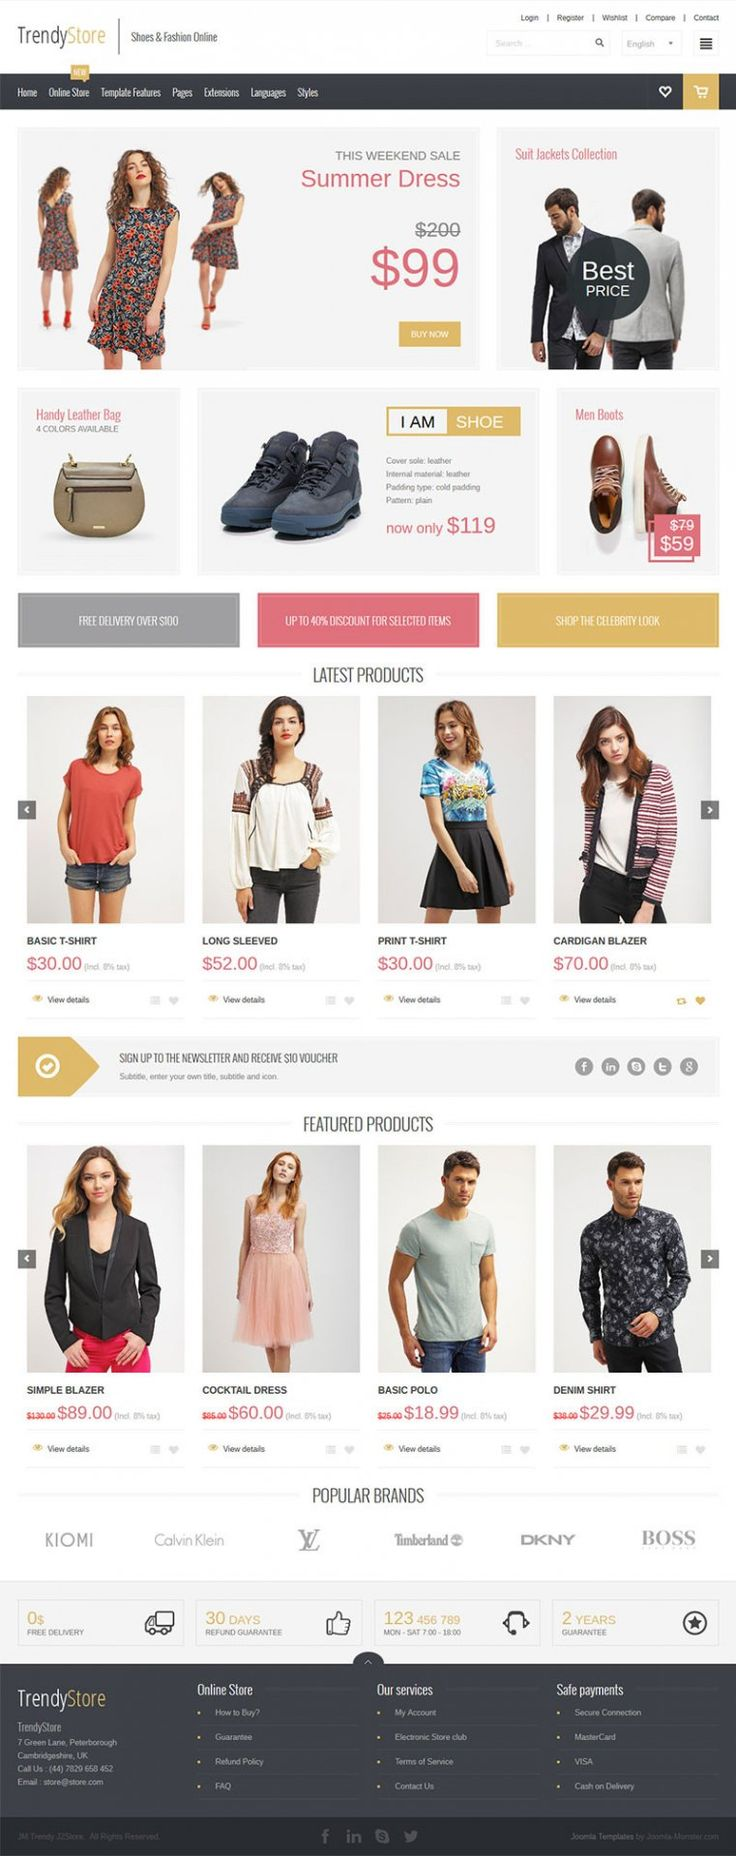 JM Trendy J2Store - online store Joomla template for Joomla 3 that provides a complete solution for those who are going to sell products online.  #online #store #Joomla #template #products  https://www.joomla-monster.com/joomla-templates/i/139-jm-trendy-j2store